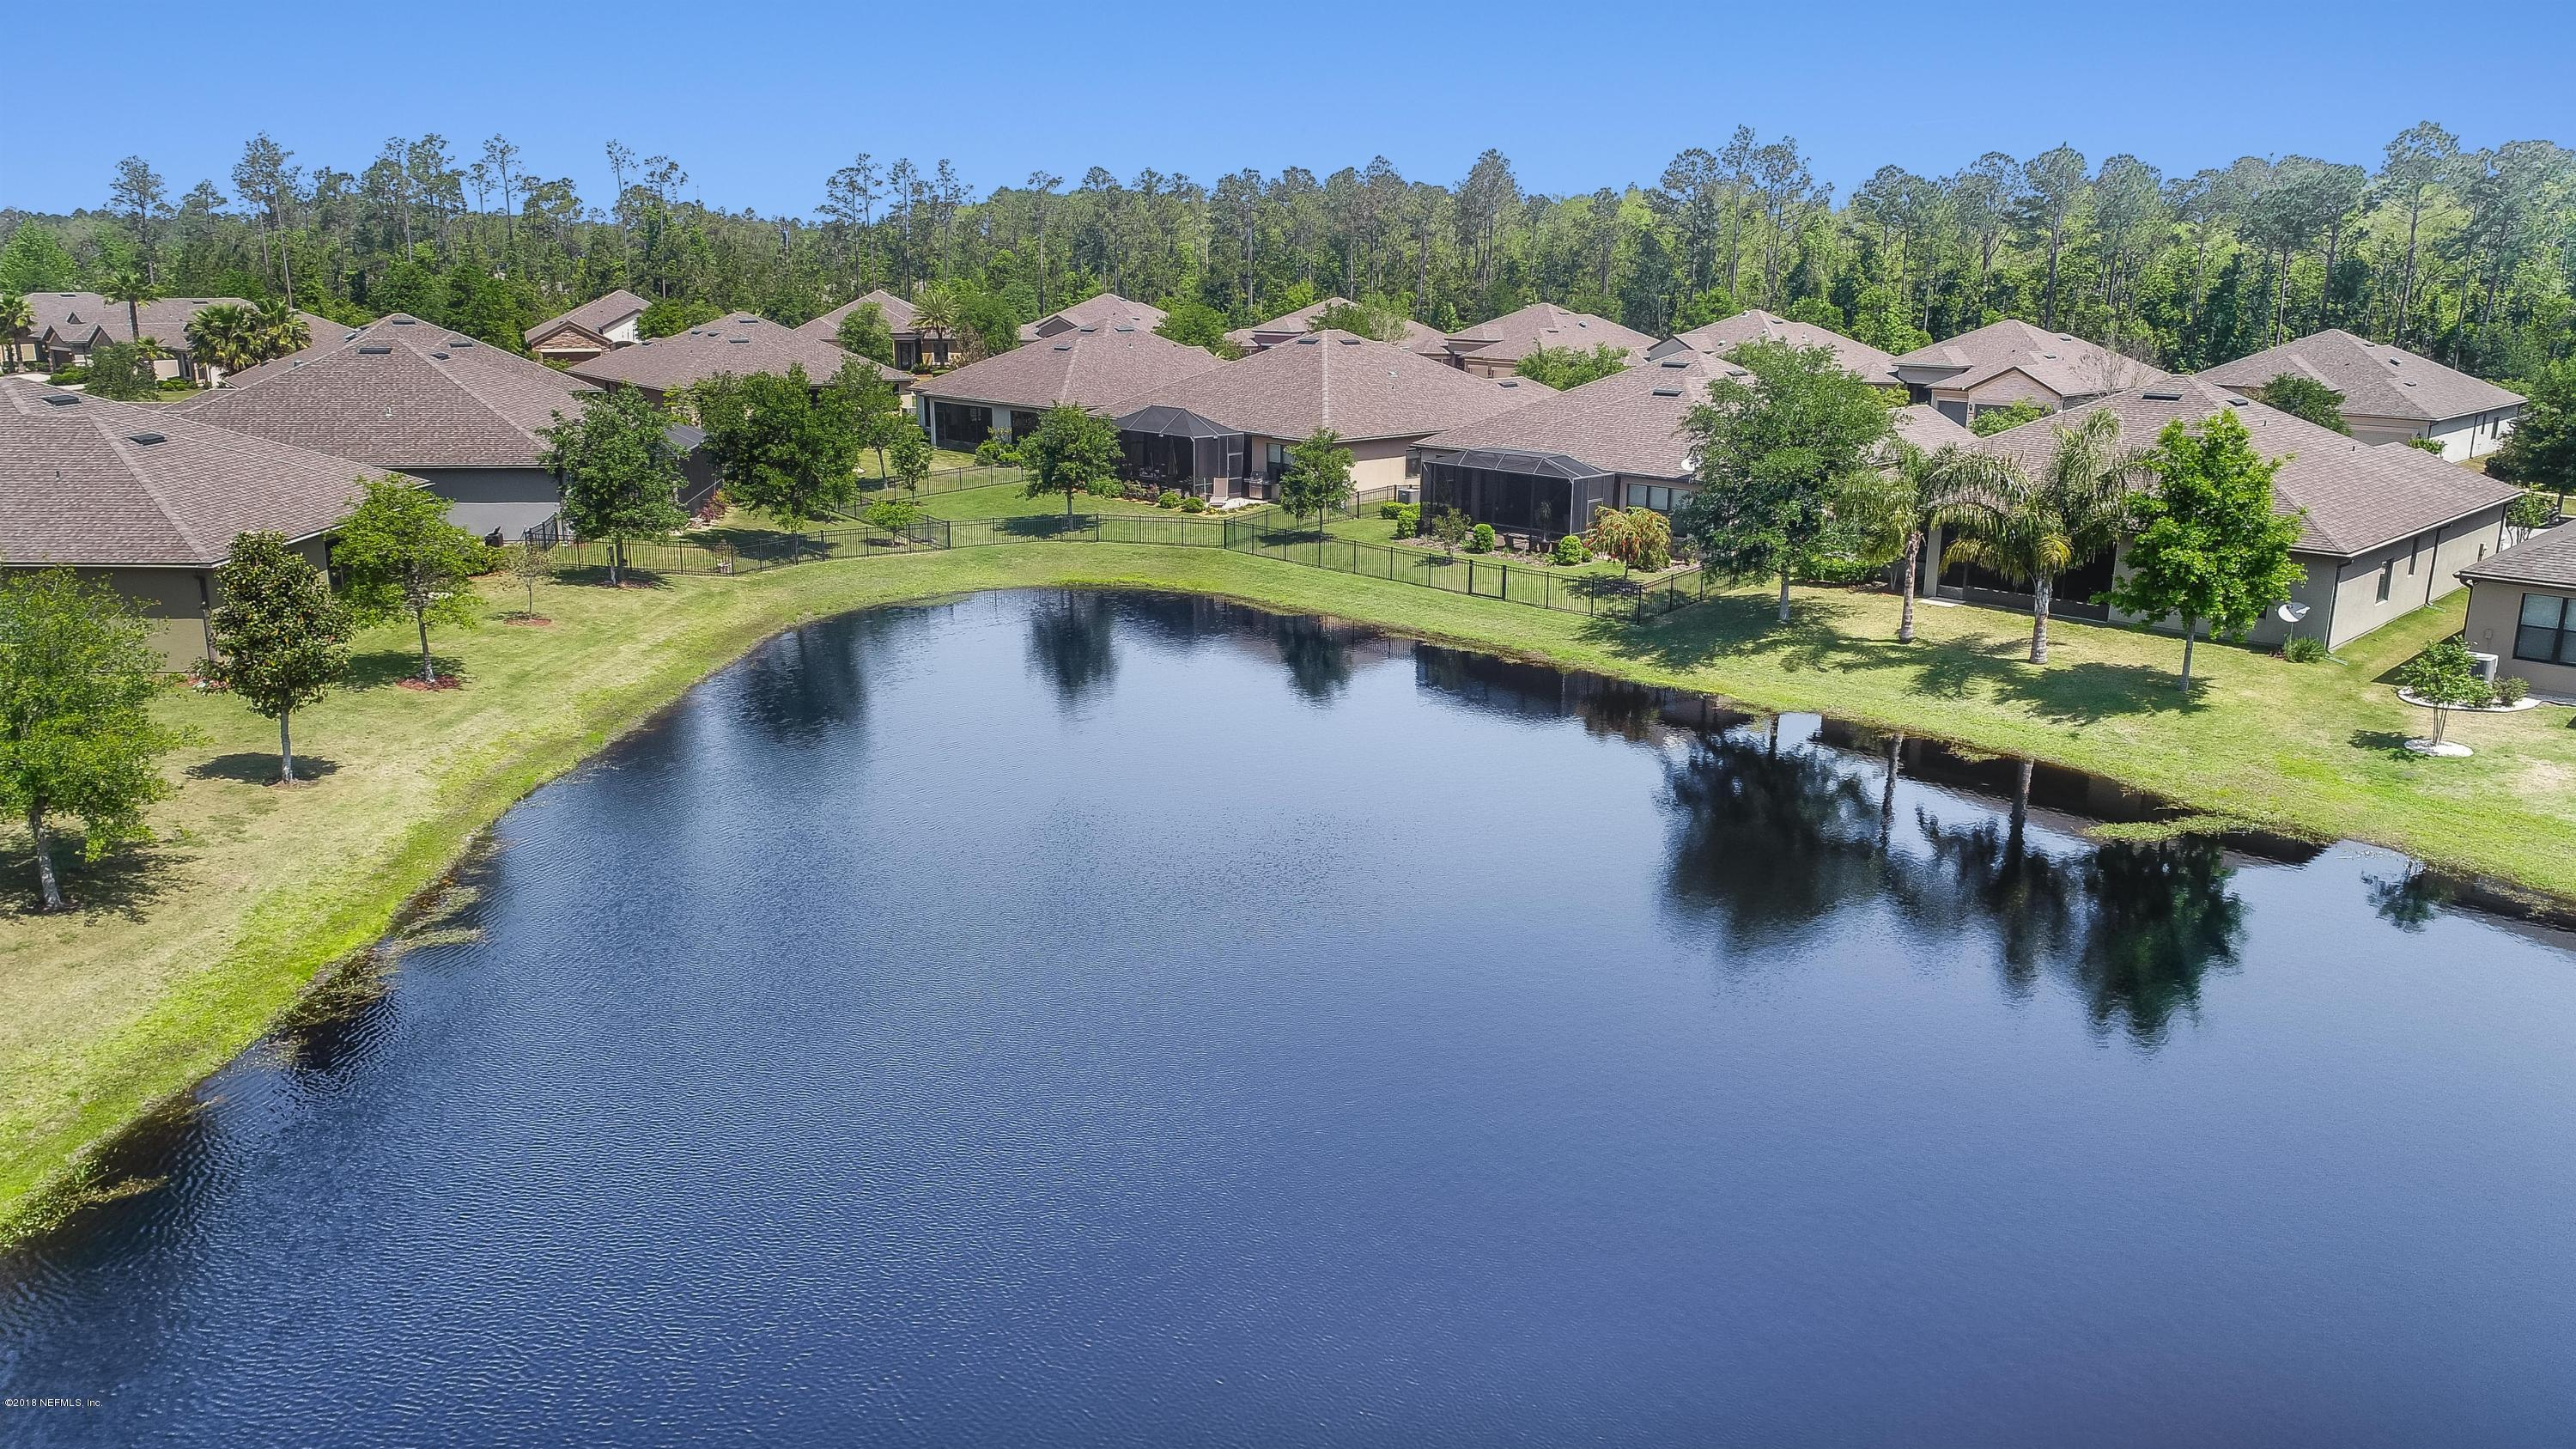 89 RIVER RUN, PONTE VEDRA, FLORIDA 32081, 3 Bedrooms Bedrooms, ,3 BathroomsBathrooms,Residential - single family,For sale,RIVER RUN,930715